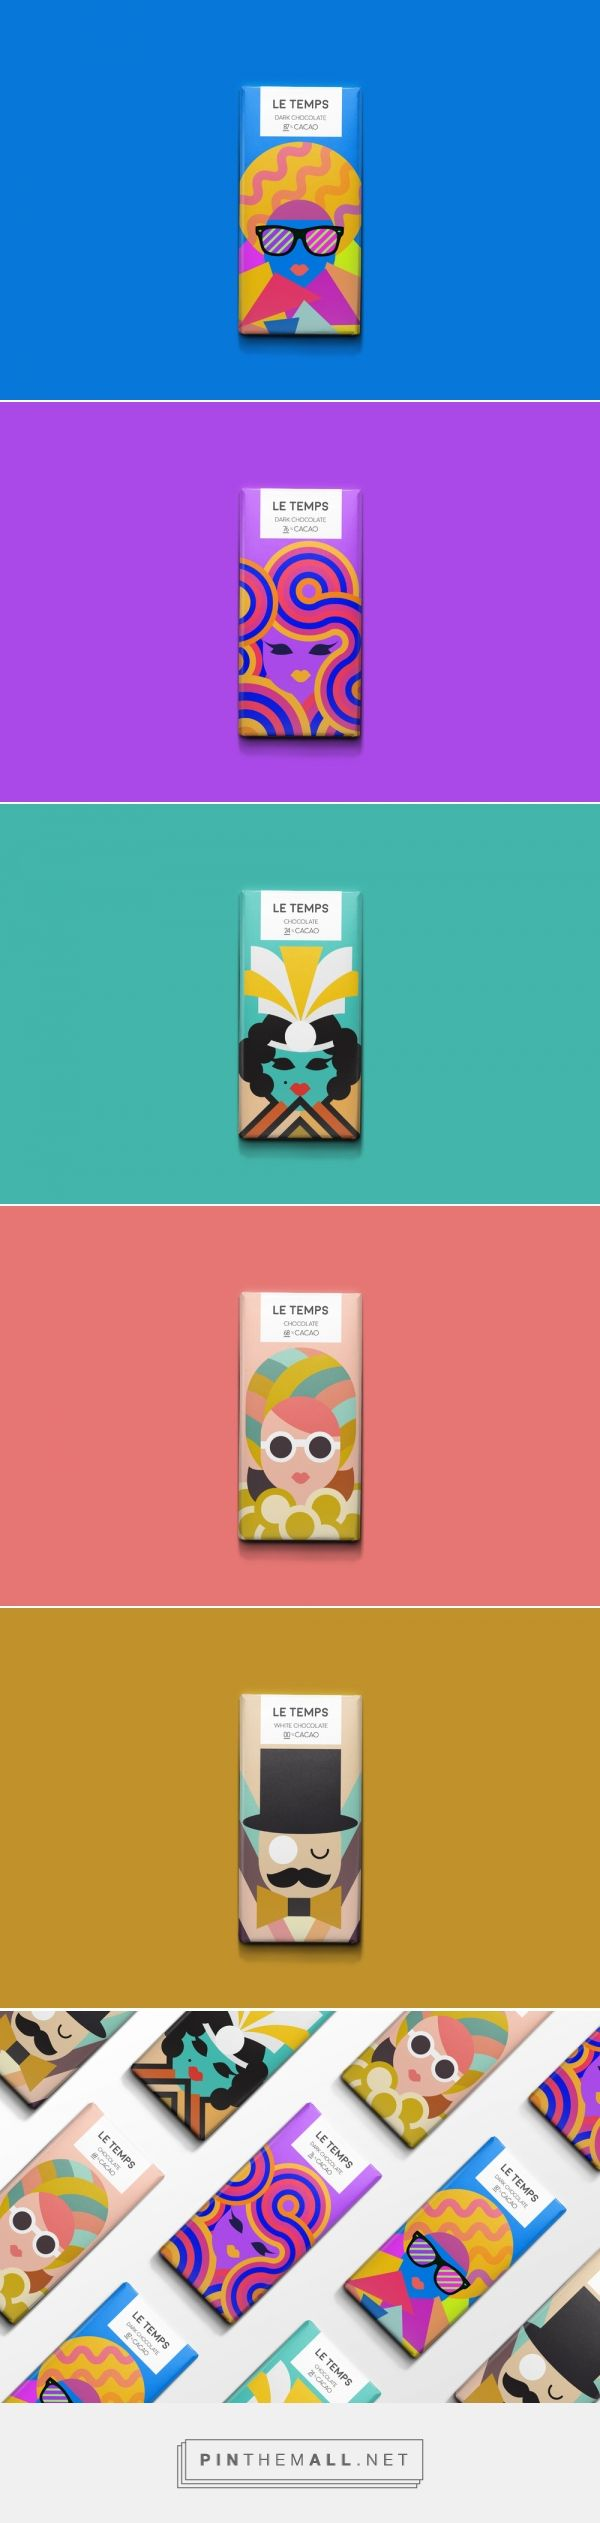 Le Temps Chocolate / concept / designed by Meeta Panesar